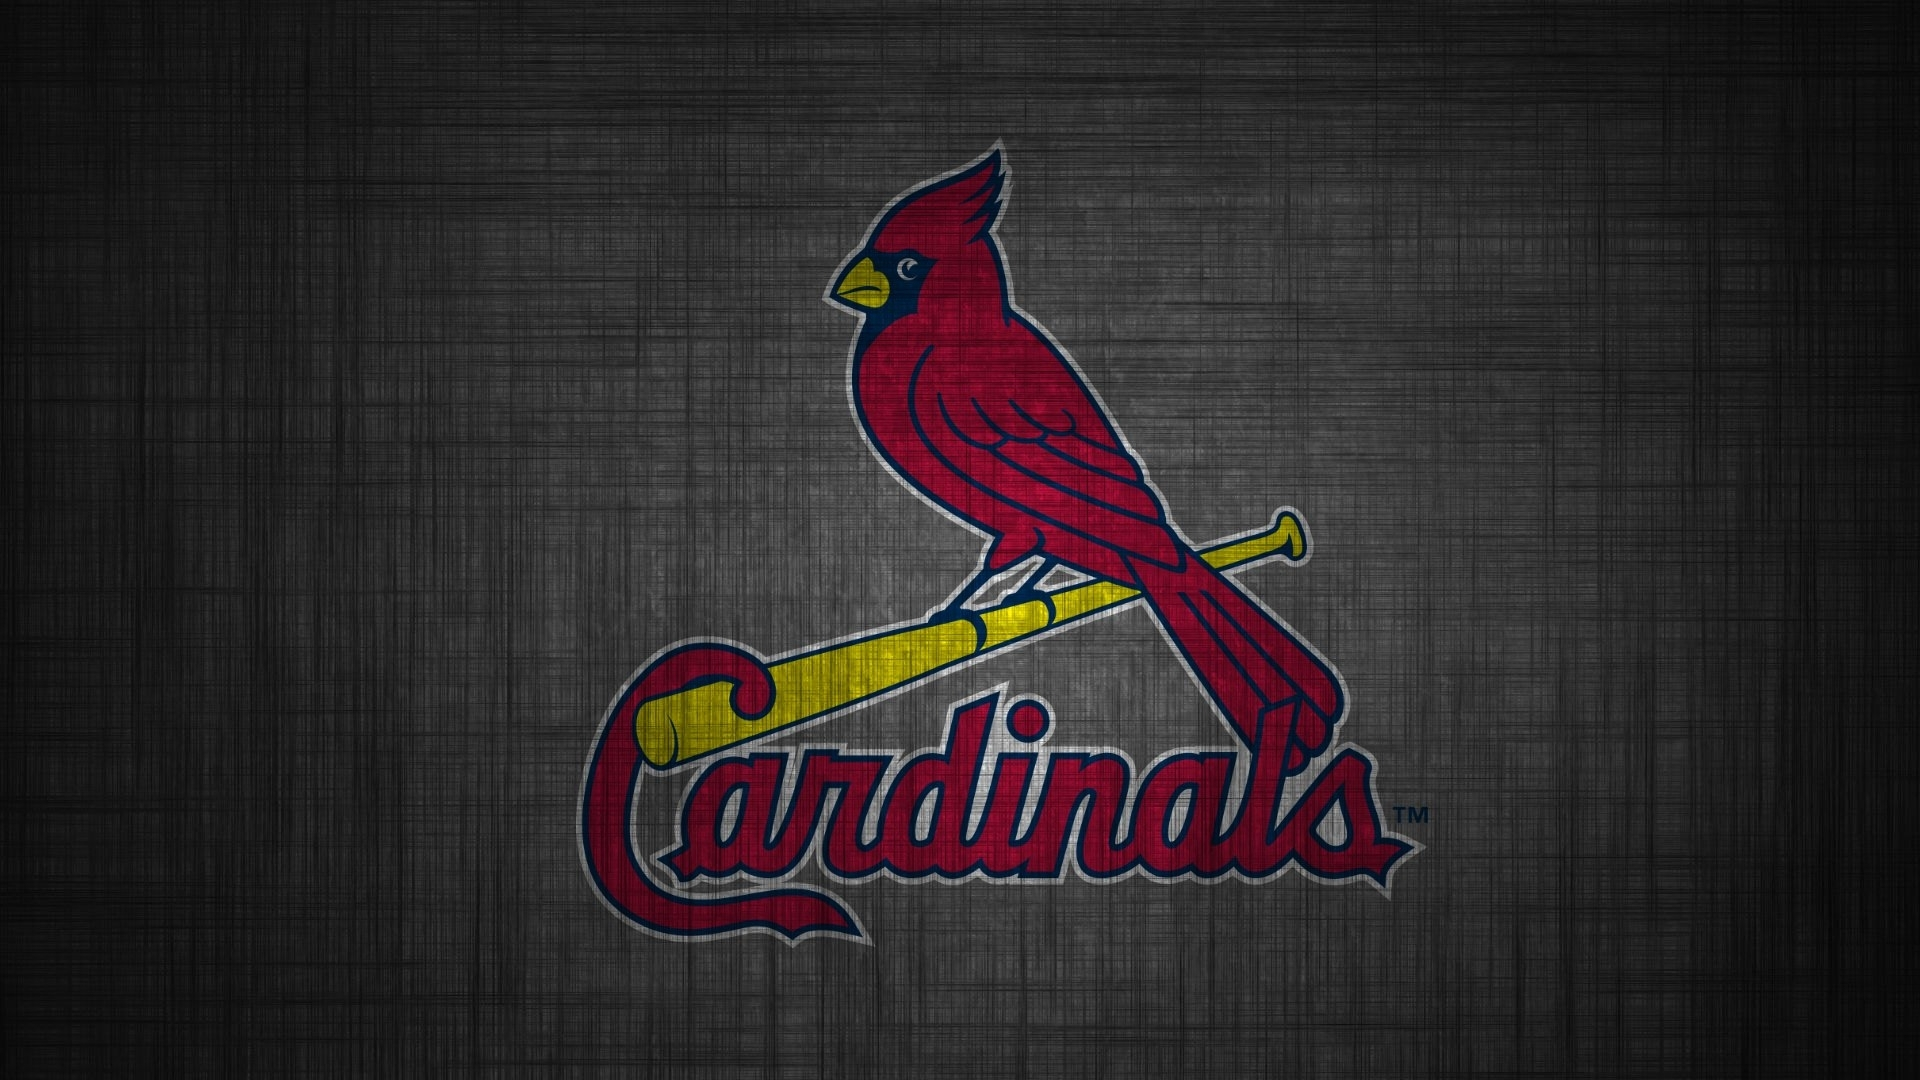 st louis cardinals wallpapers in hd quality for desktop and mobile